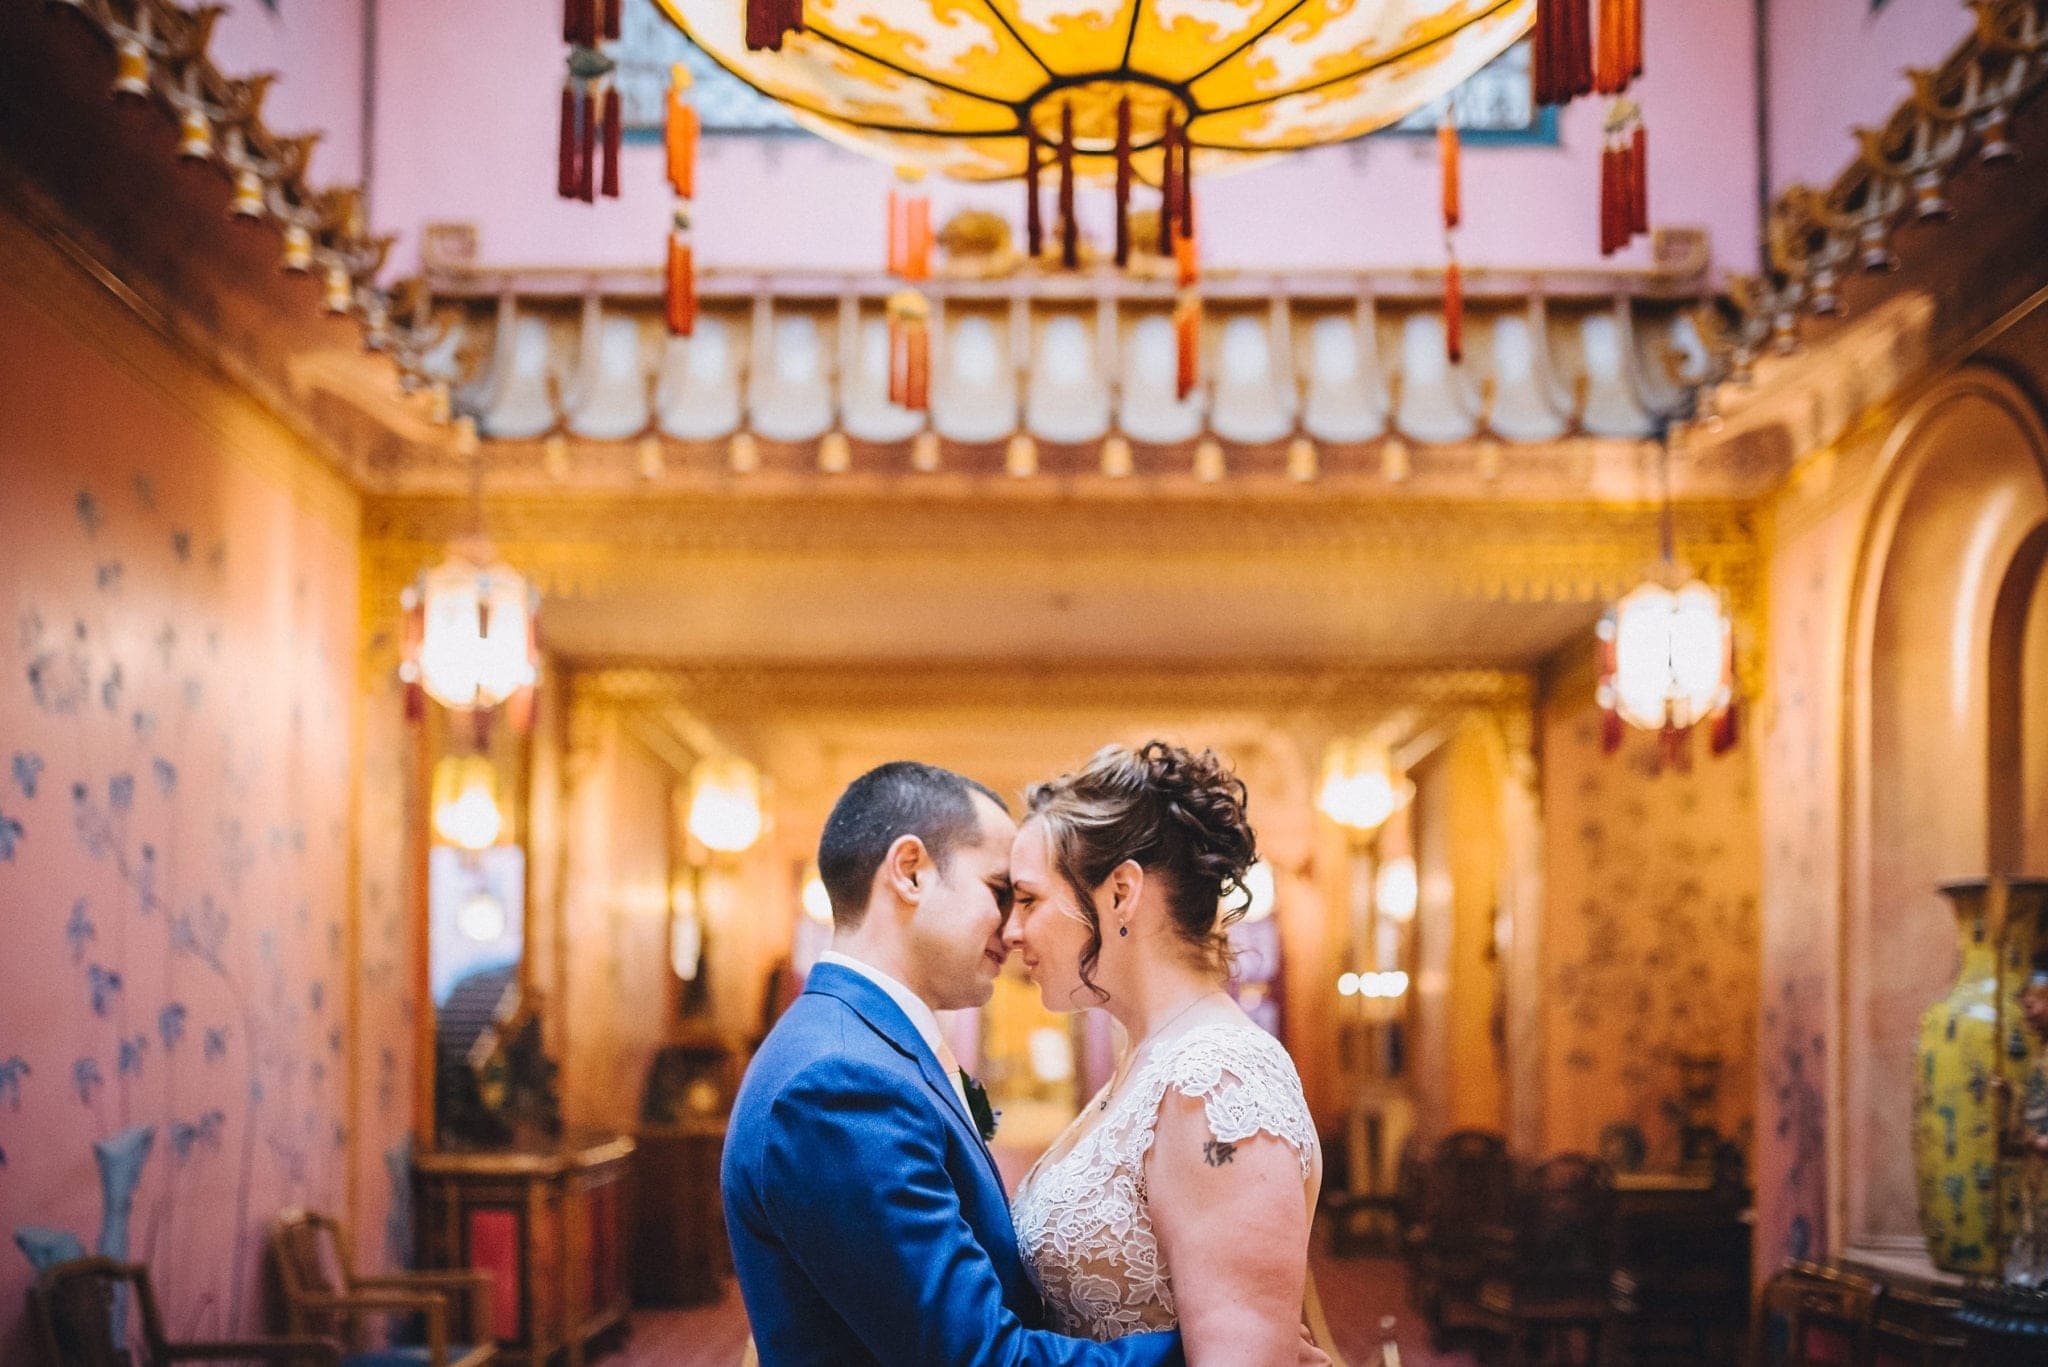 Bride and groom embrace in Brighton Royal Pavilion underneath lantern